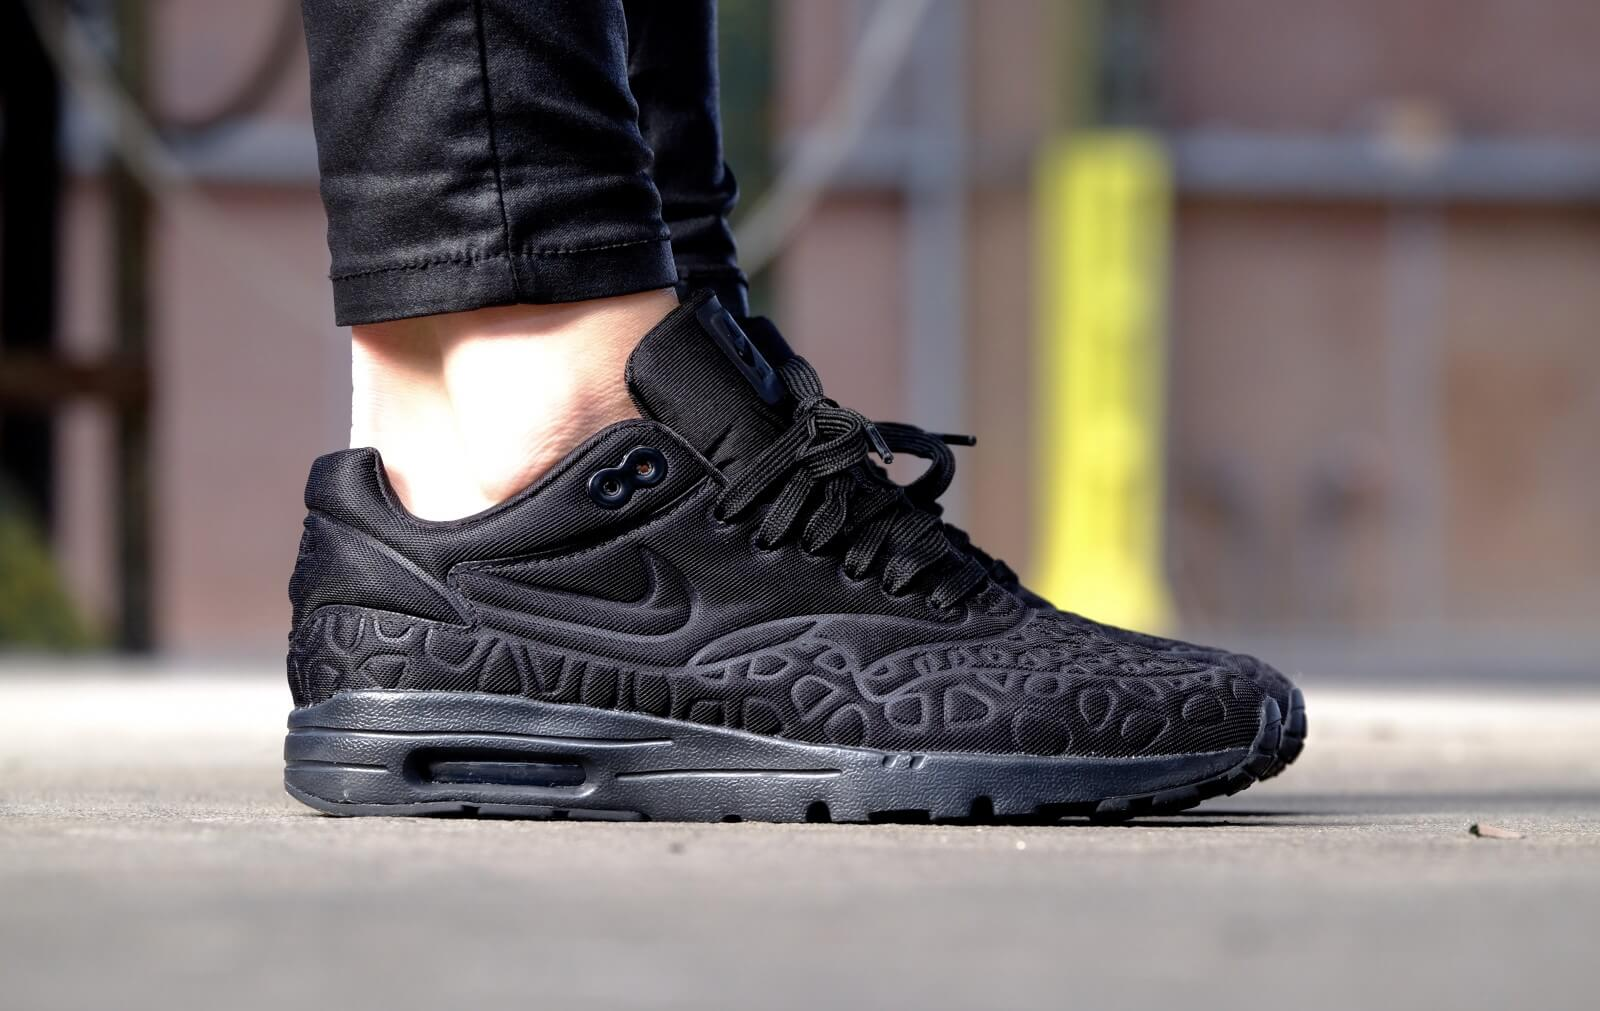 Nike WMNS Air Max 1 Ultra Plush Black Black White 844882 001